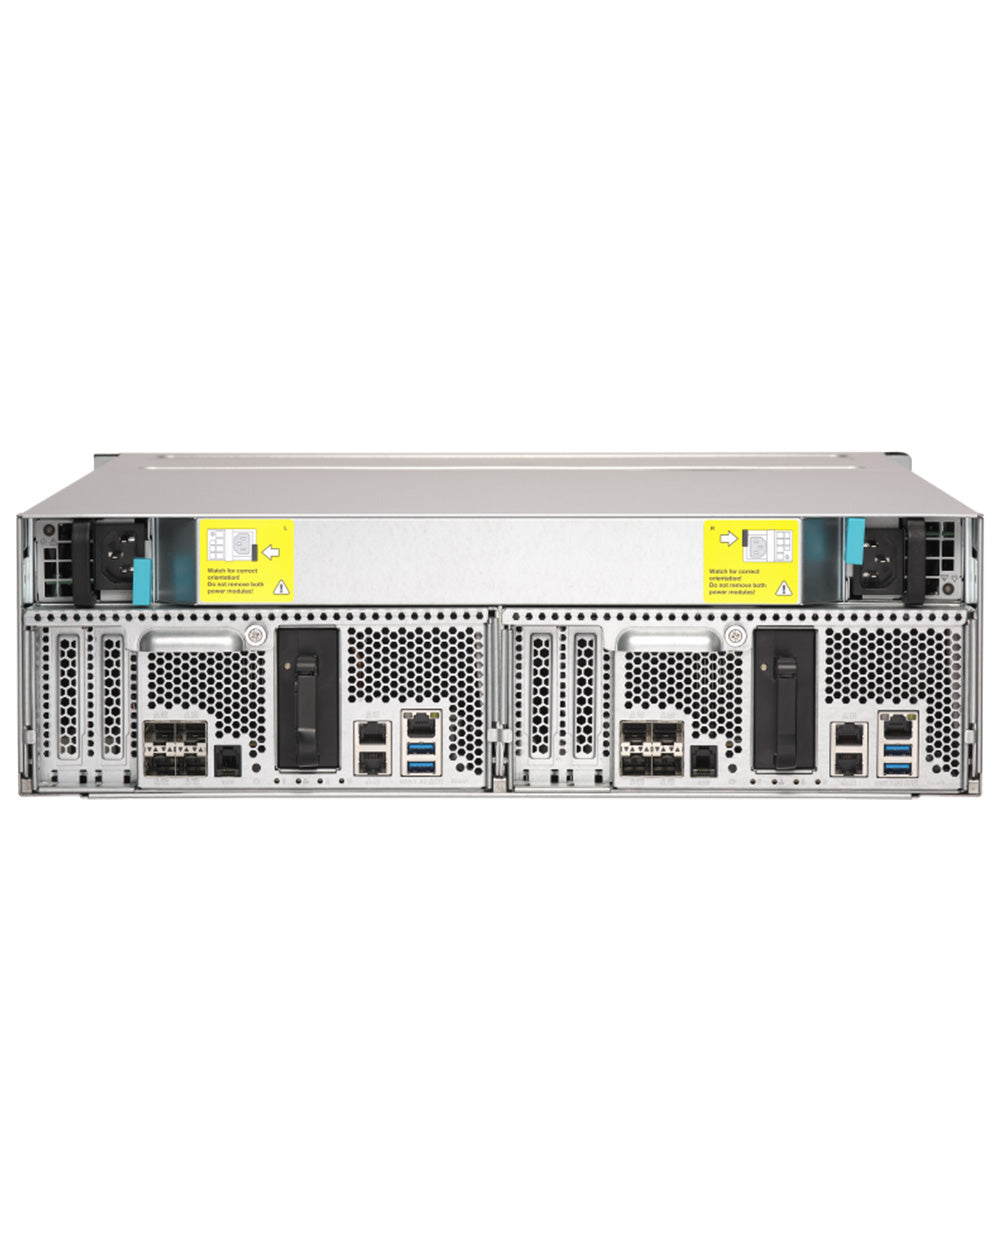 QNAP ES1686dc-2145NT-128G 16-Bay Diskless 3U Rackmount NAS only $0.00 from QNAP Direct